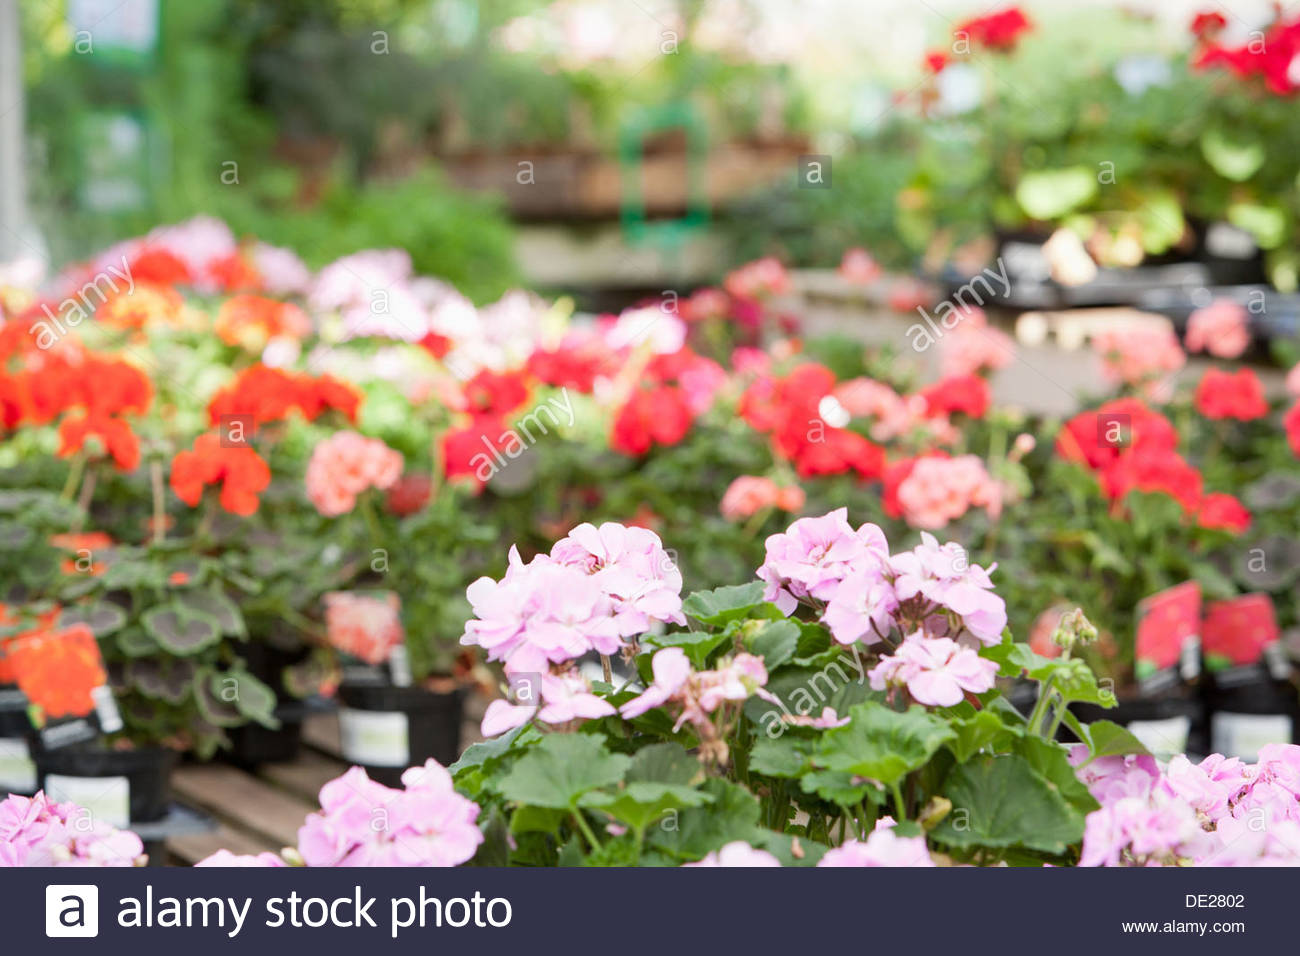 Flowers at nursery - Stock Image